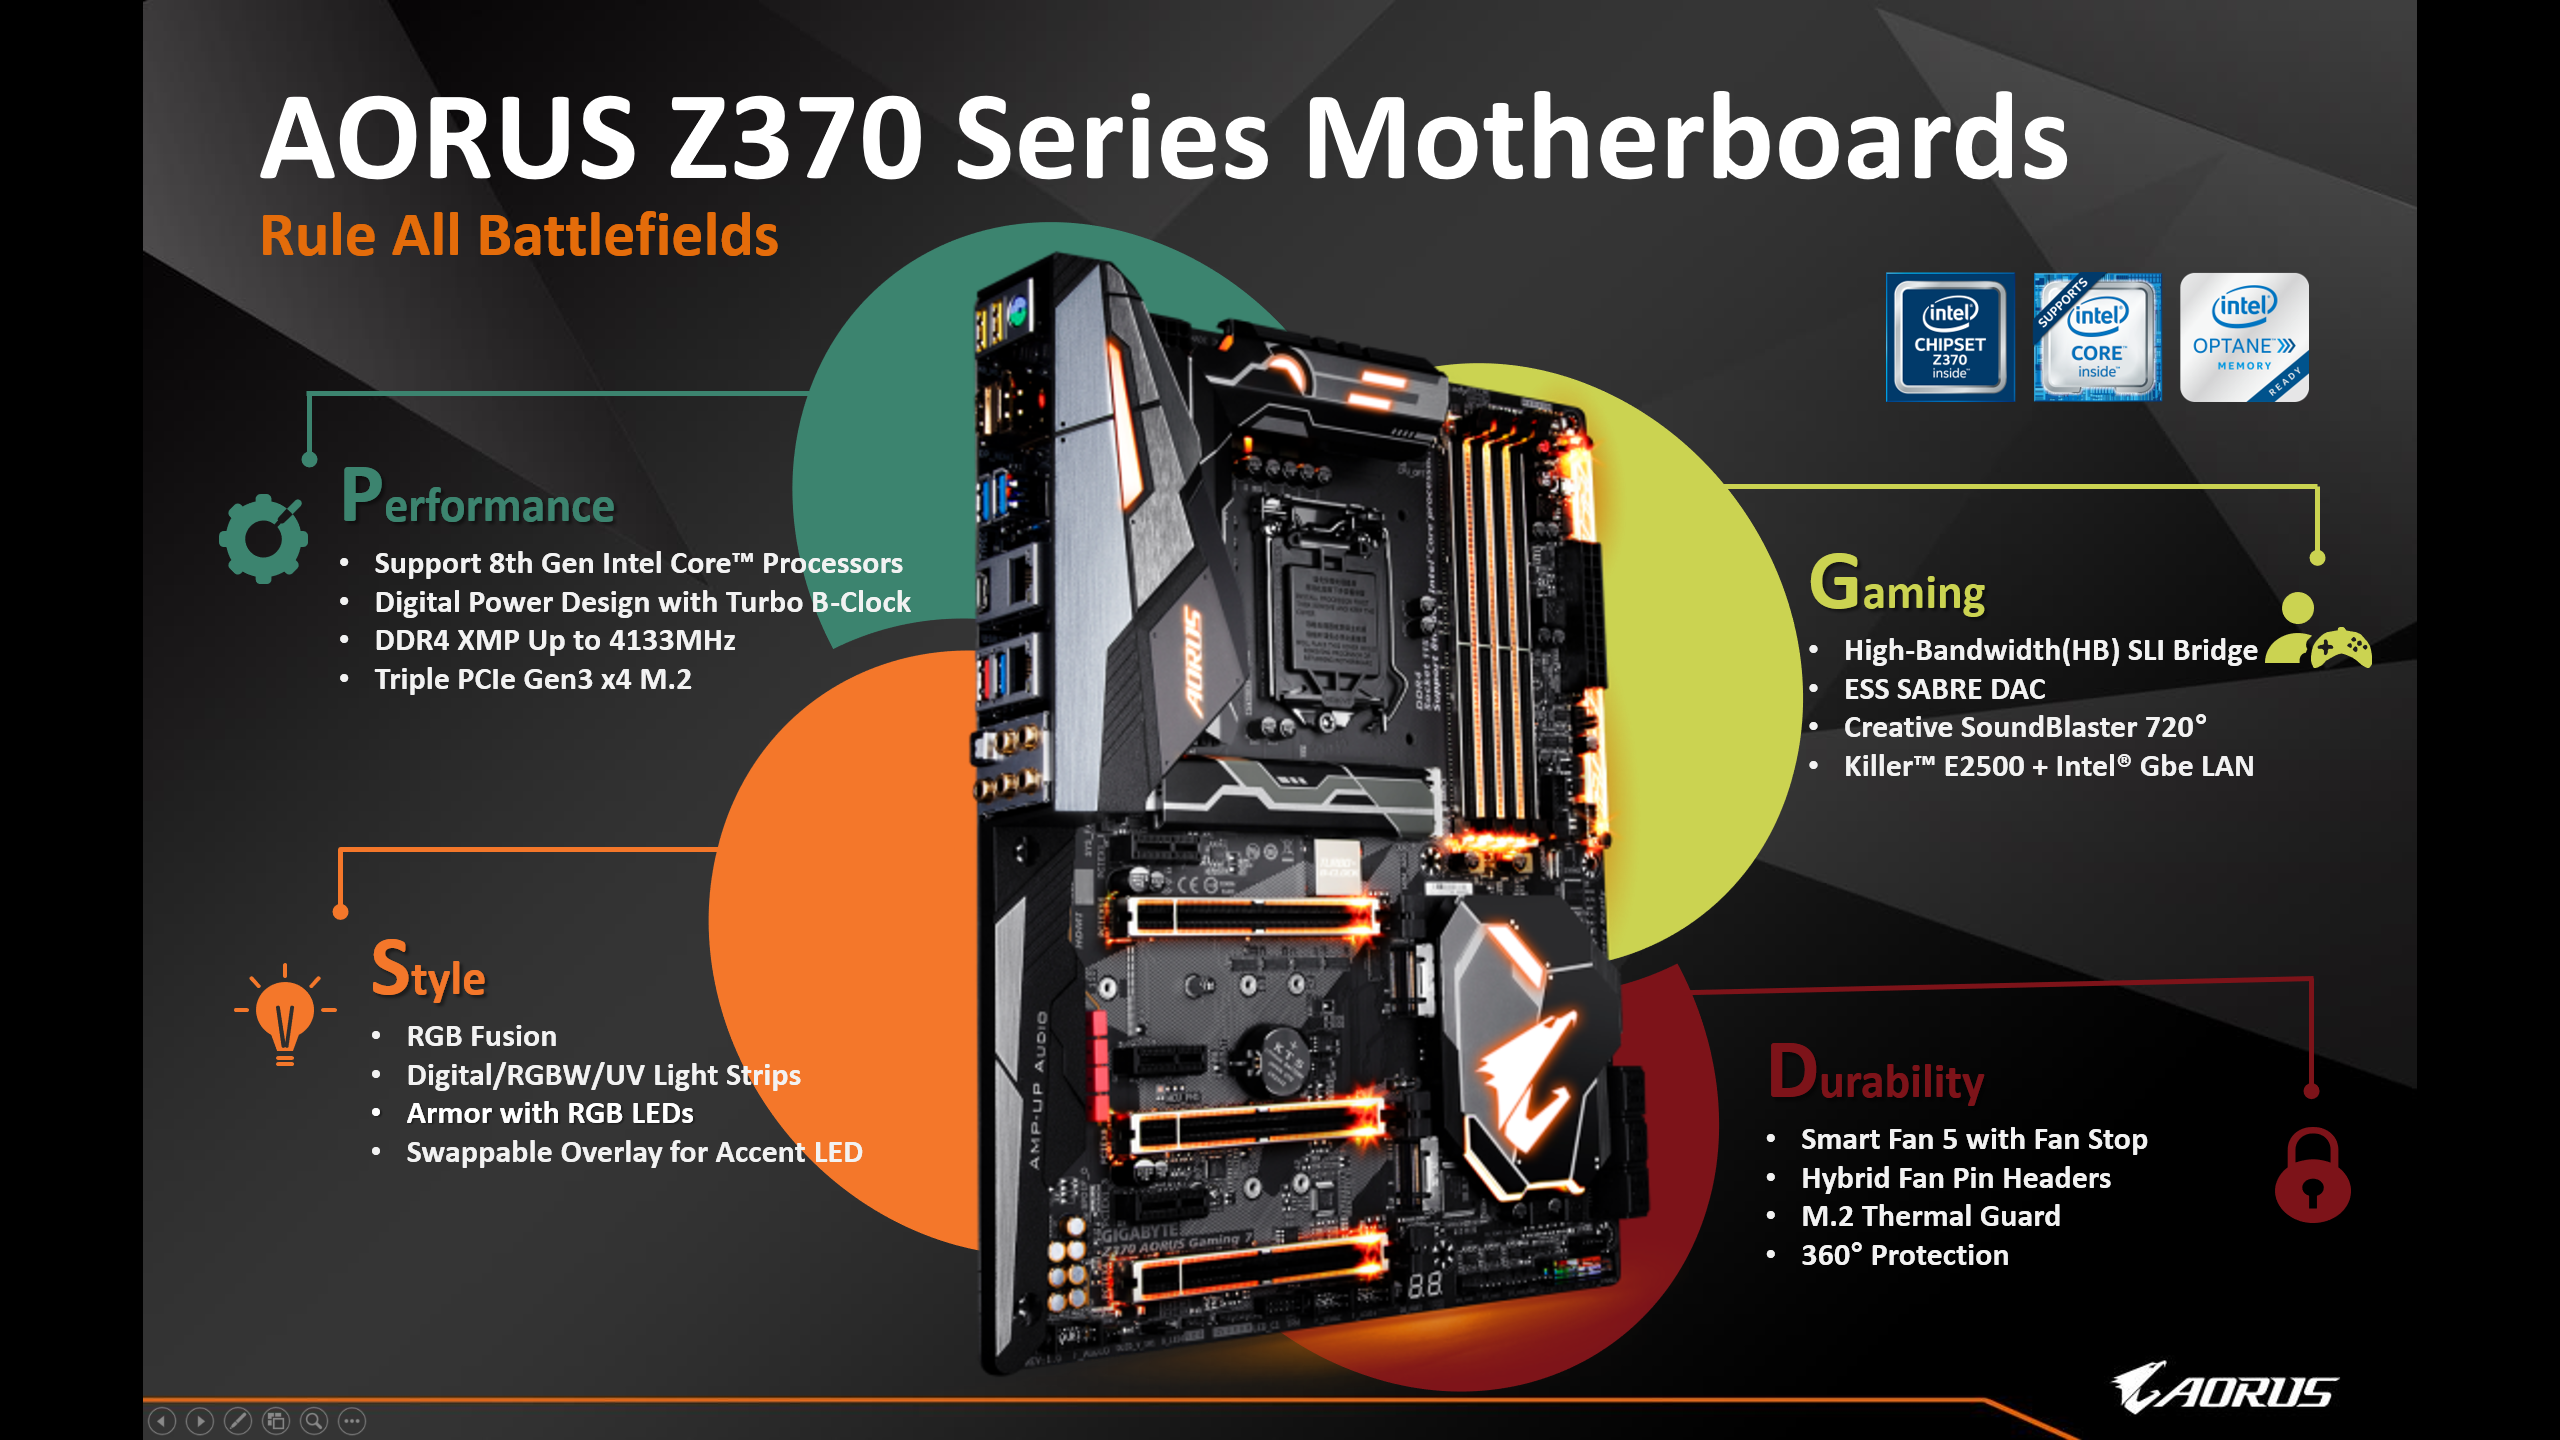 Gigabyte Z370 AORUS Gaming 7 LGA 1151 Motherboard Review